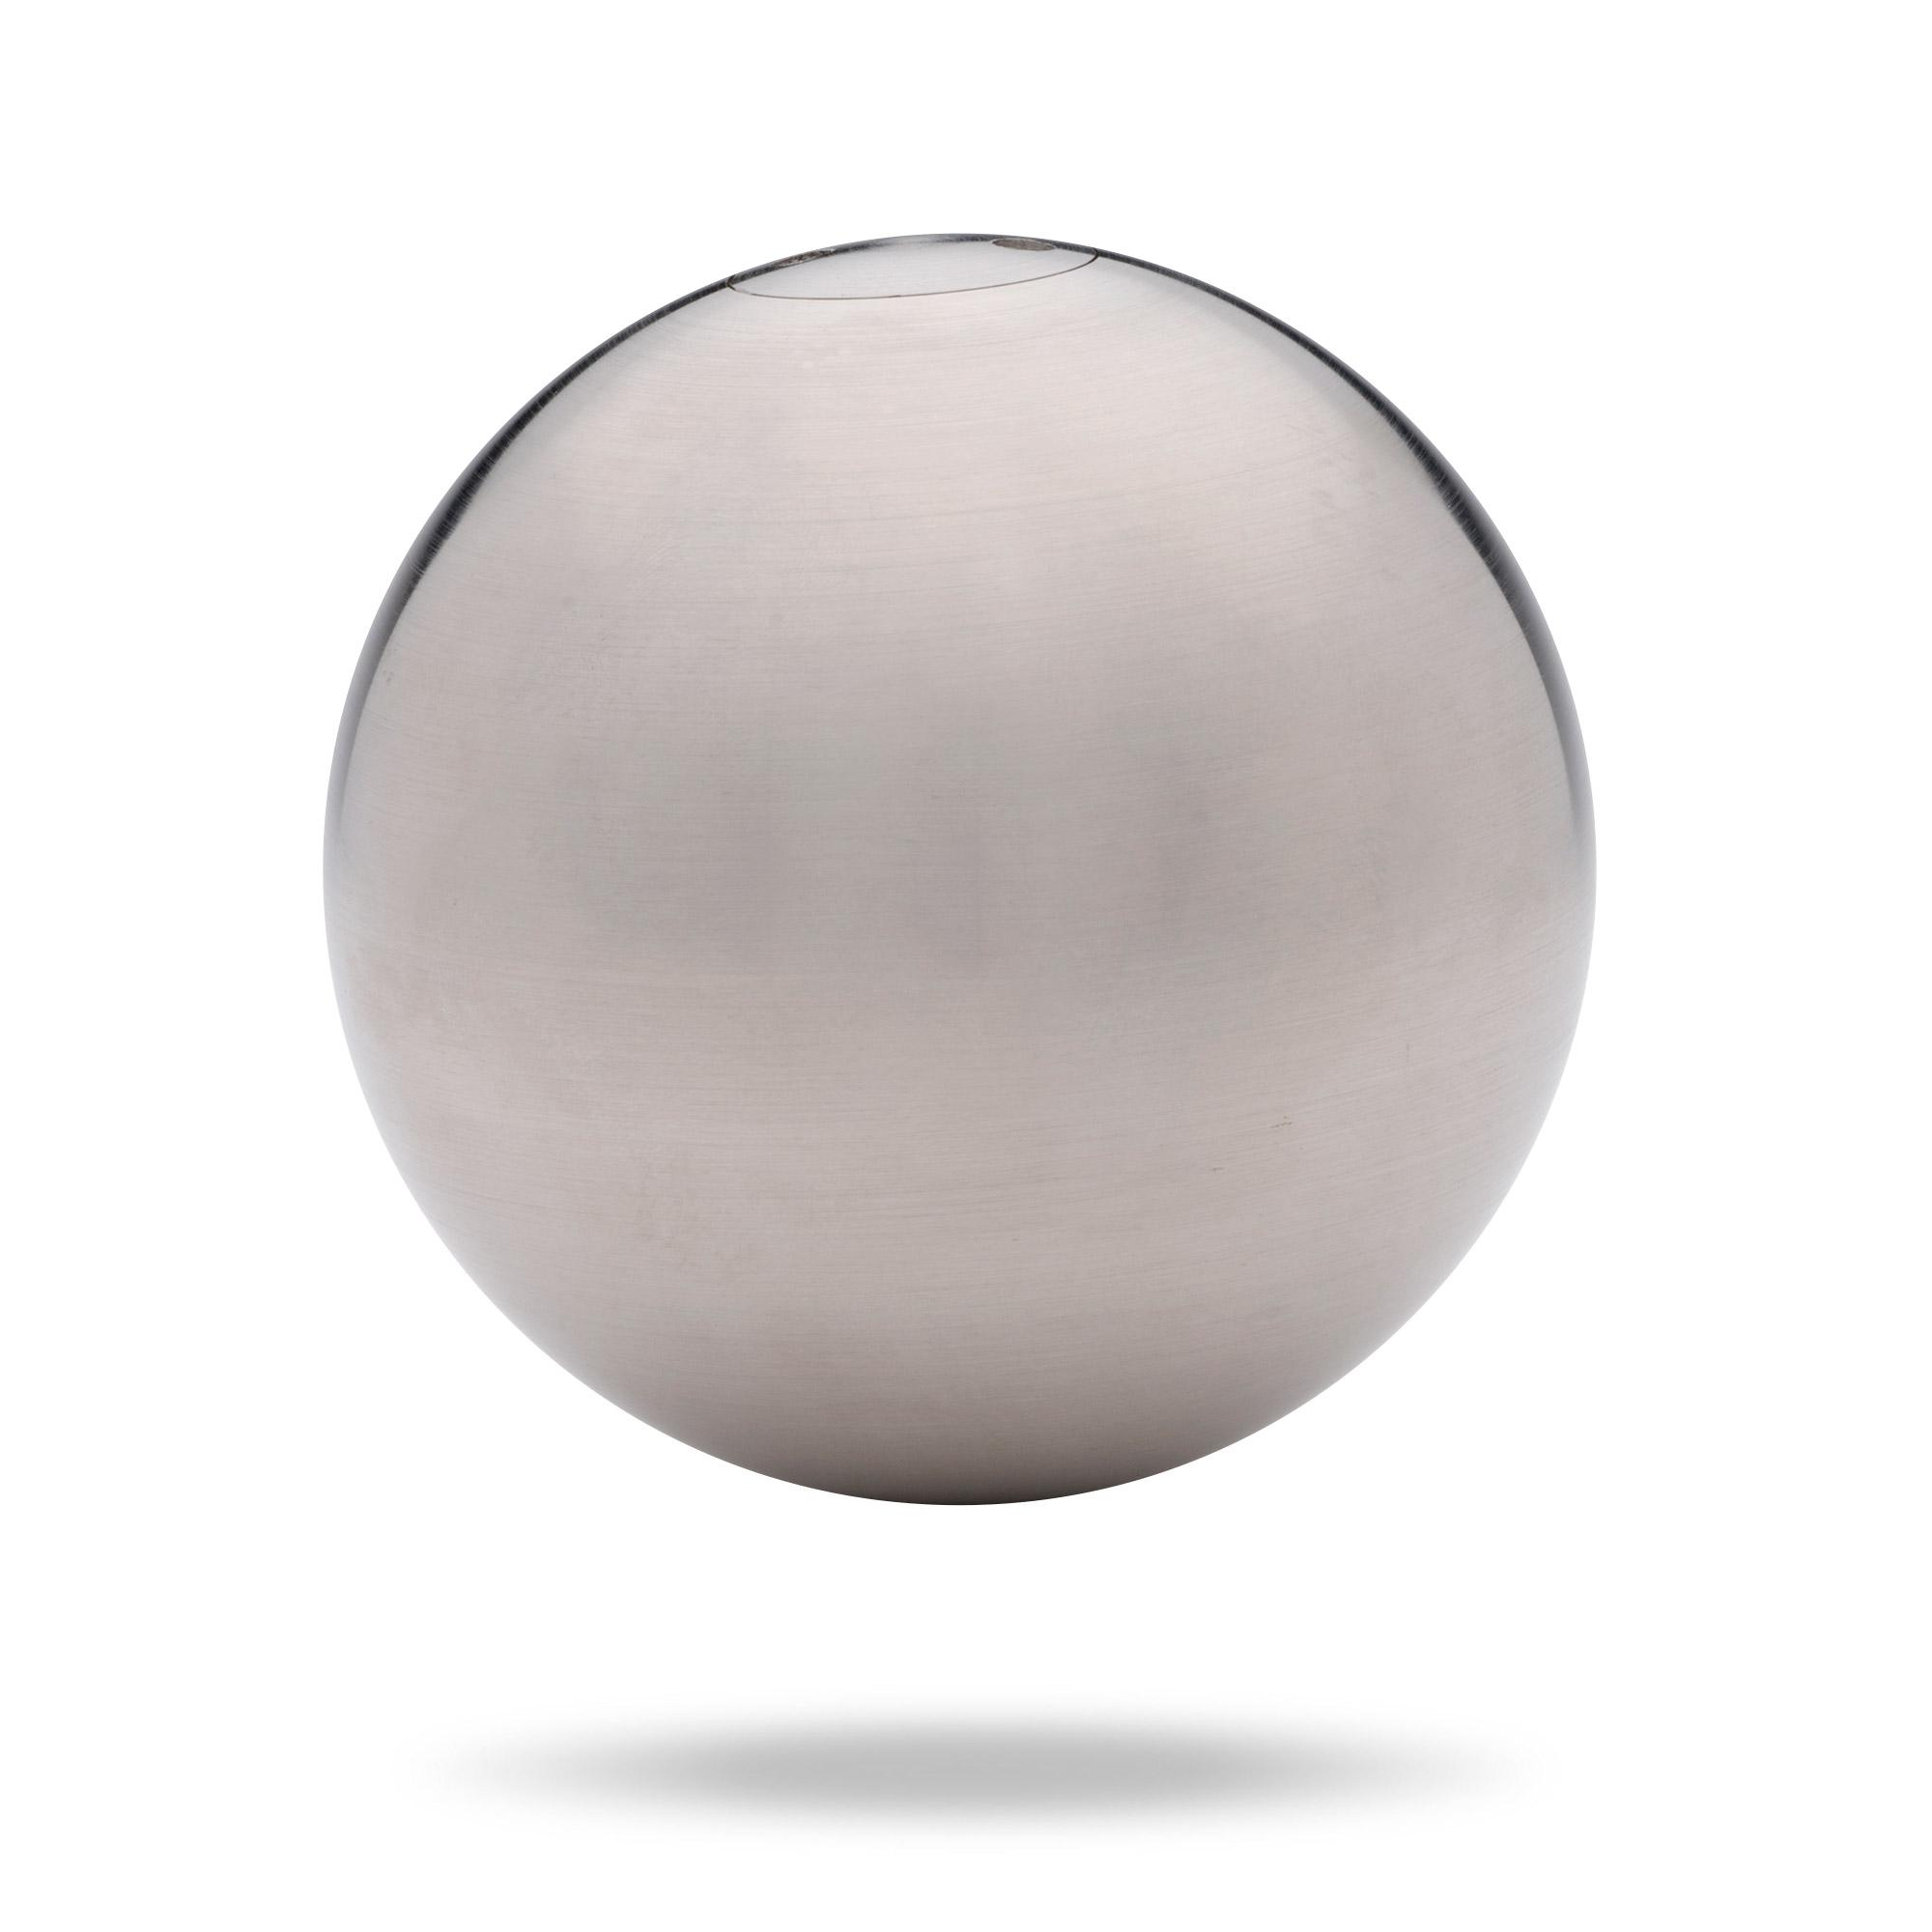 Stainless Steel Shot Put - 4 kilo